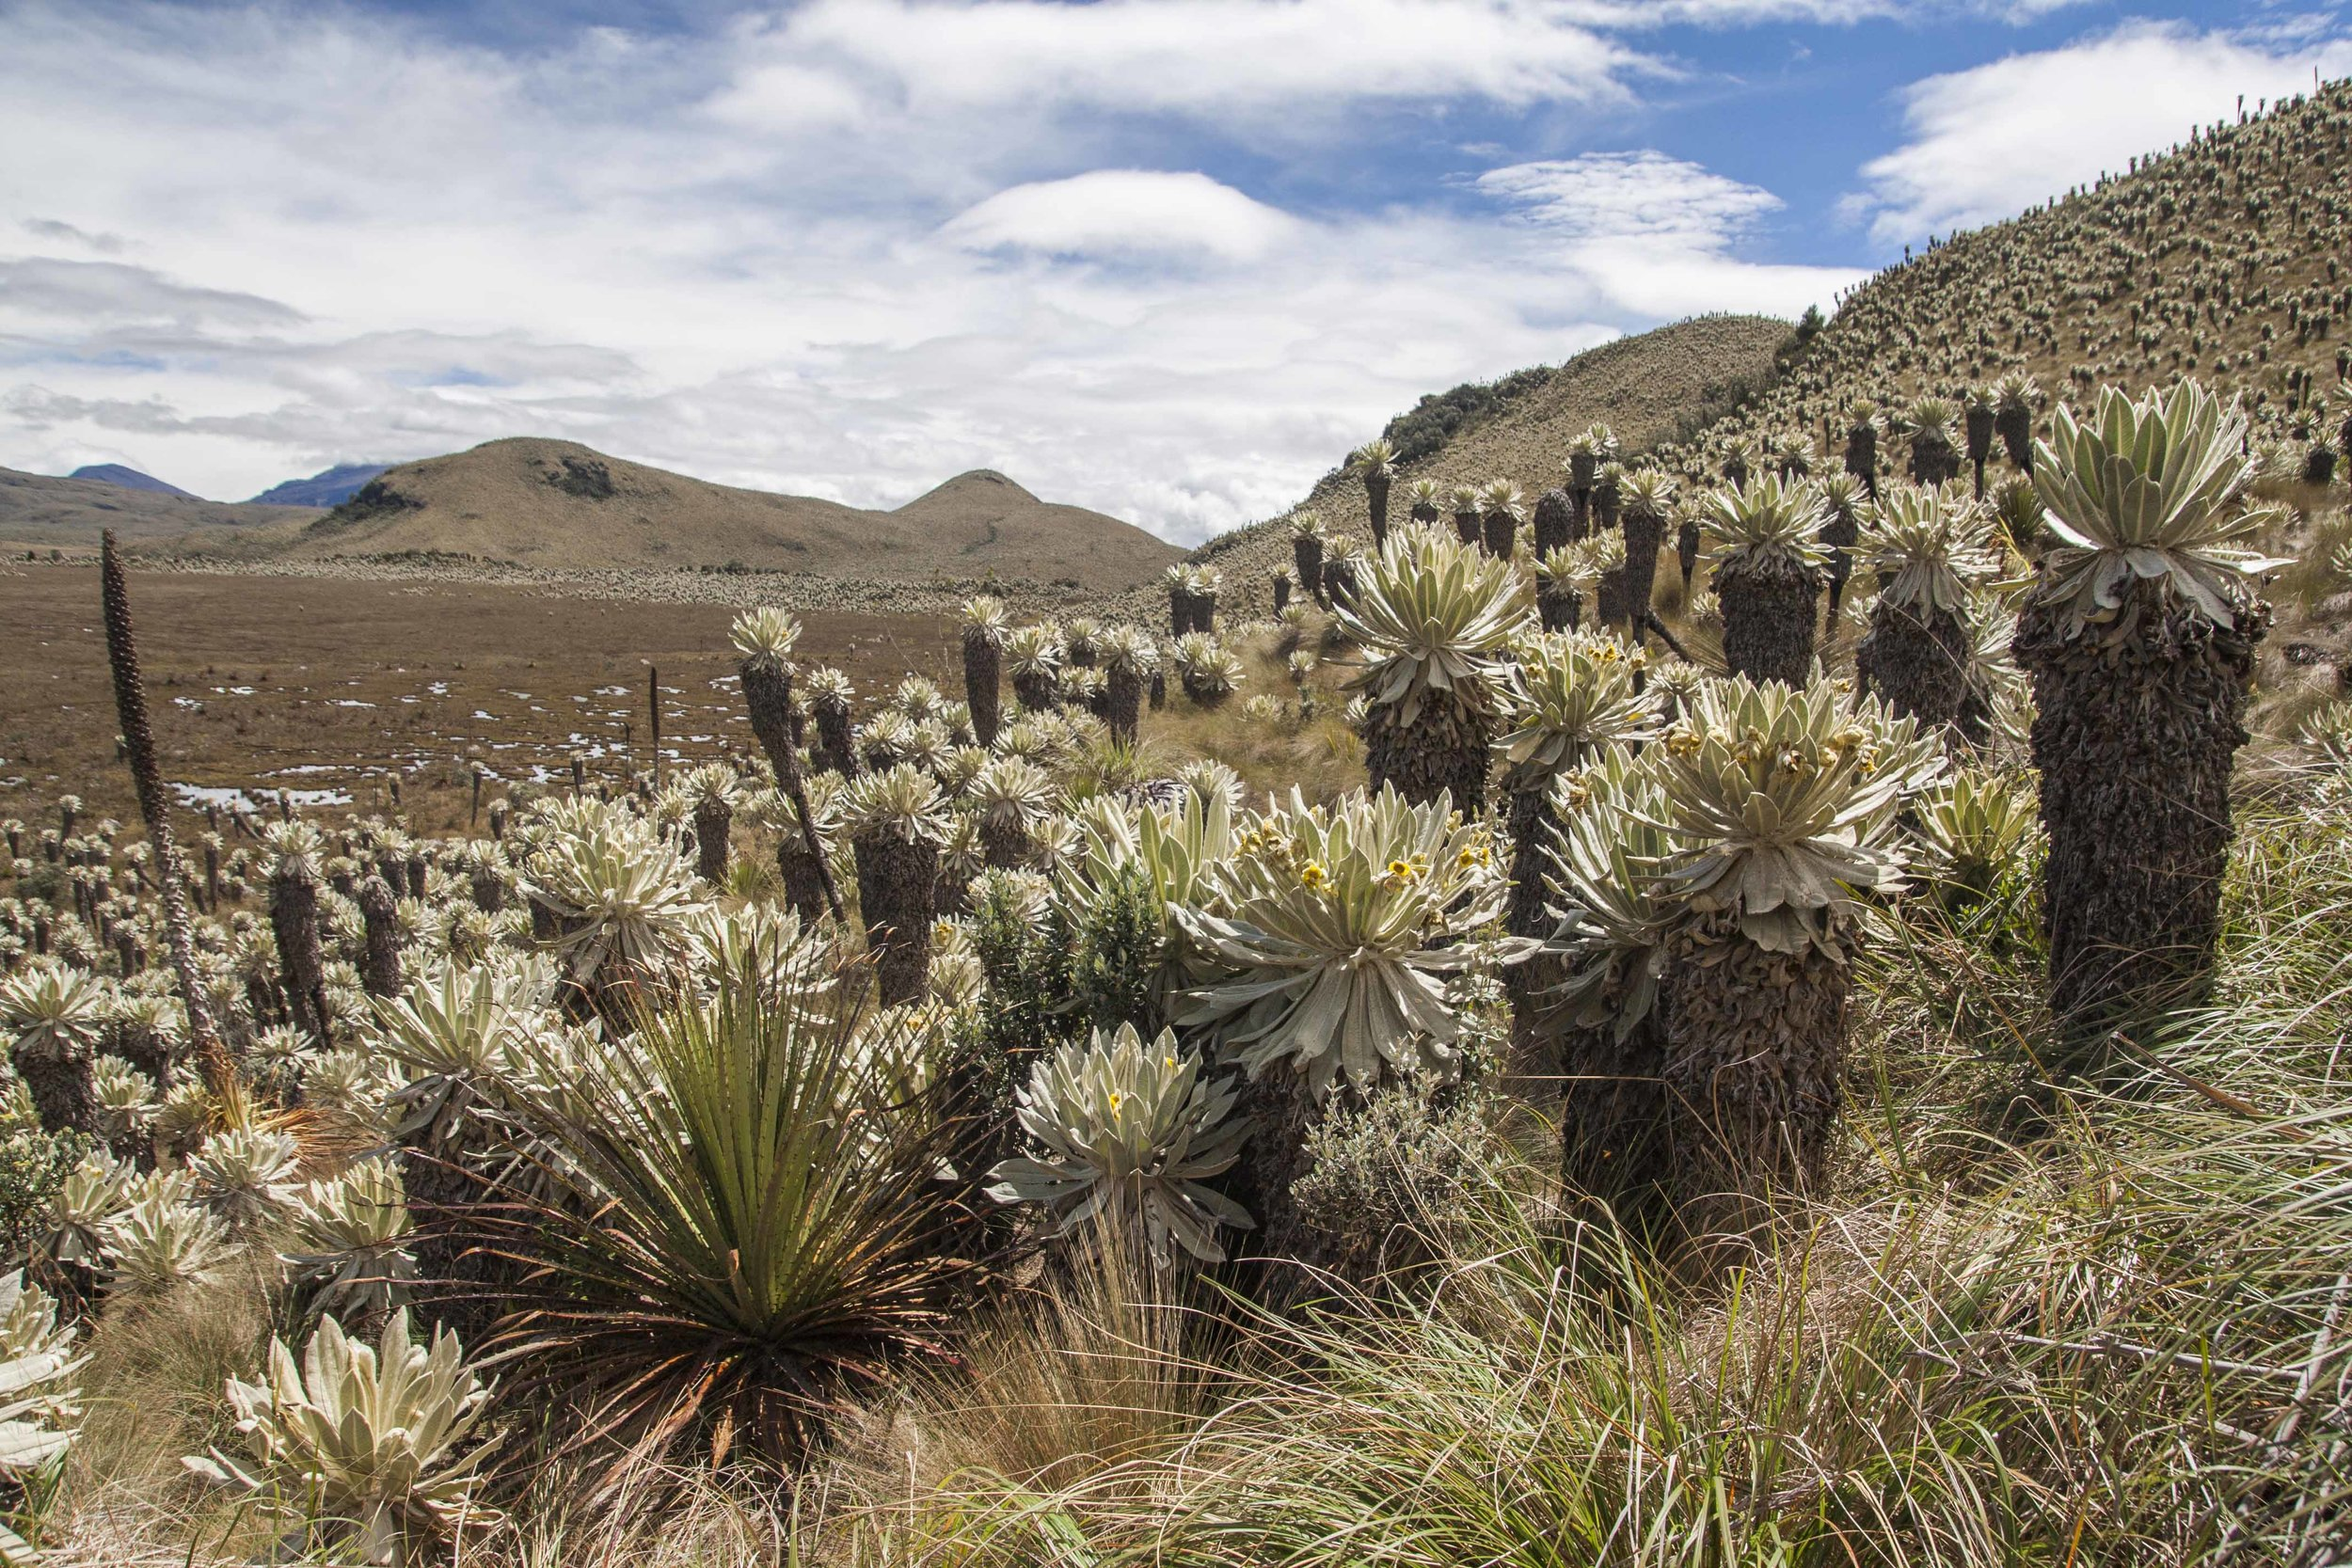 Frailejones at Voldero Lagoon in the Paramo of El Angel Ecological Reserve, Ecuador